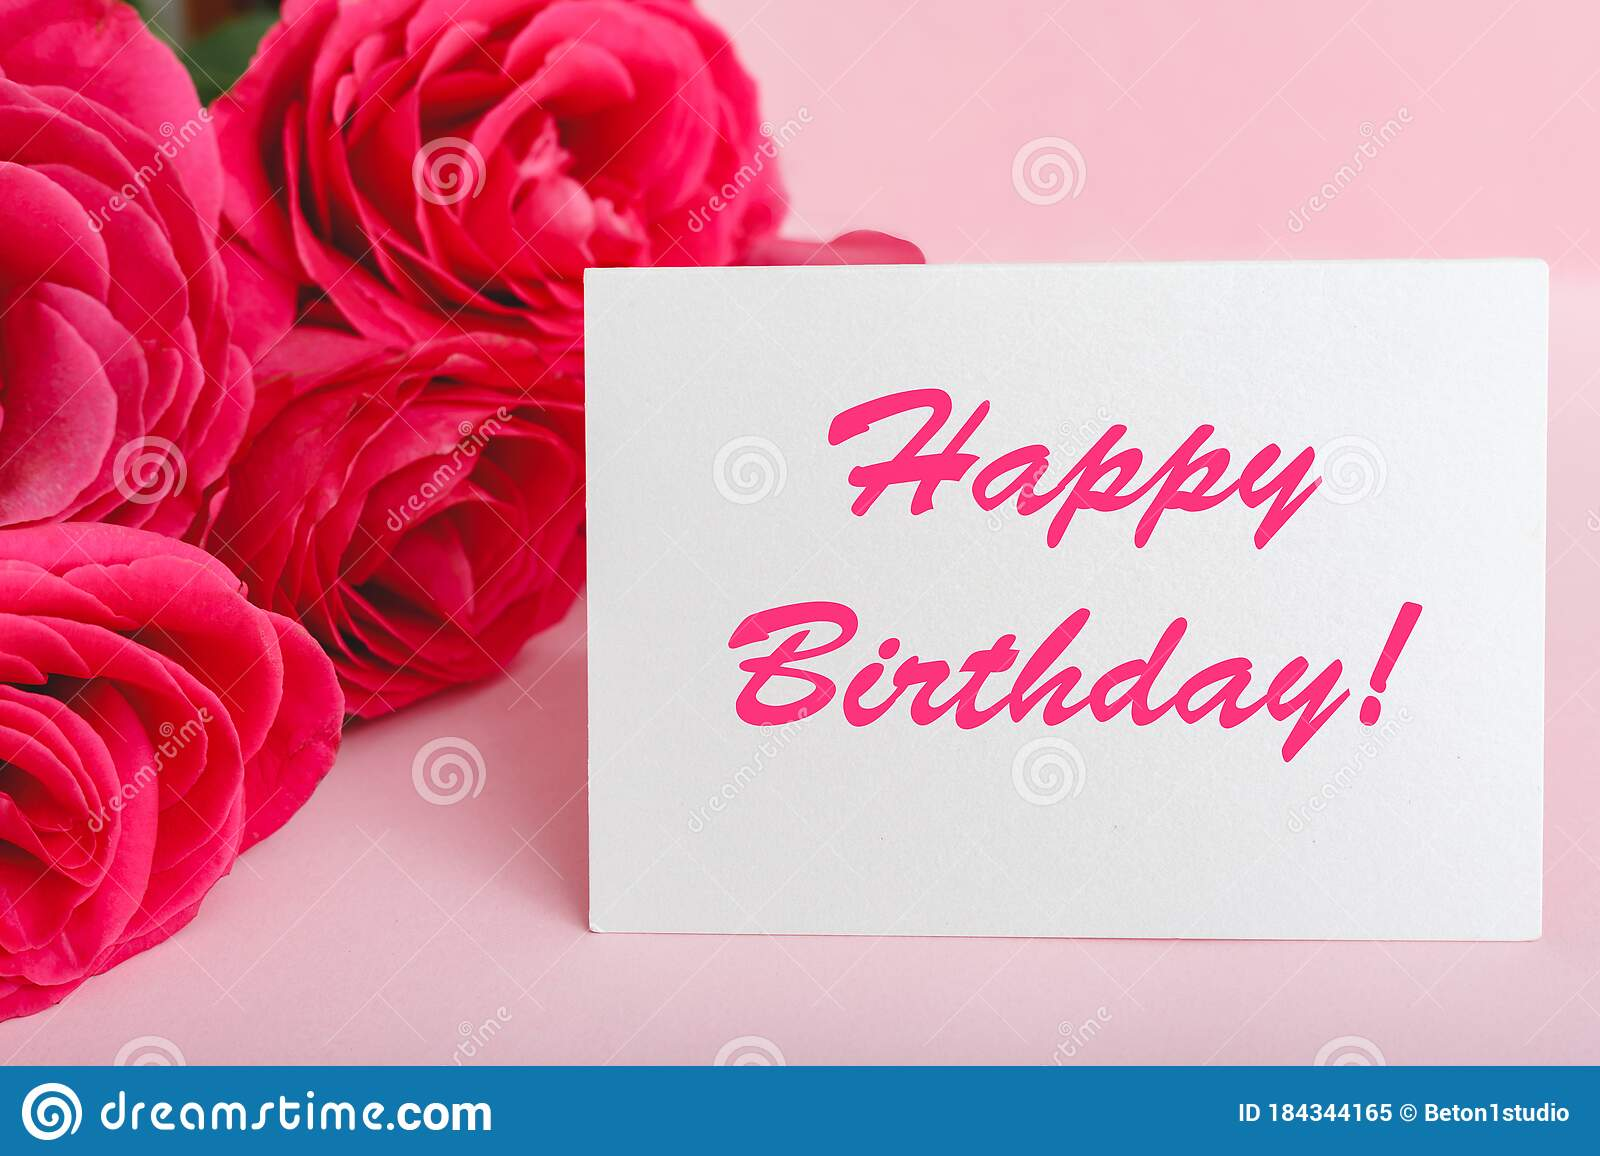 Happy Birthday Text On Card In Flower Bouquet On Pink Background Flower Delivery Congratulation Card Greeting Card In Pink Red Stock Image Image Of Colourful Copyspace 184344165